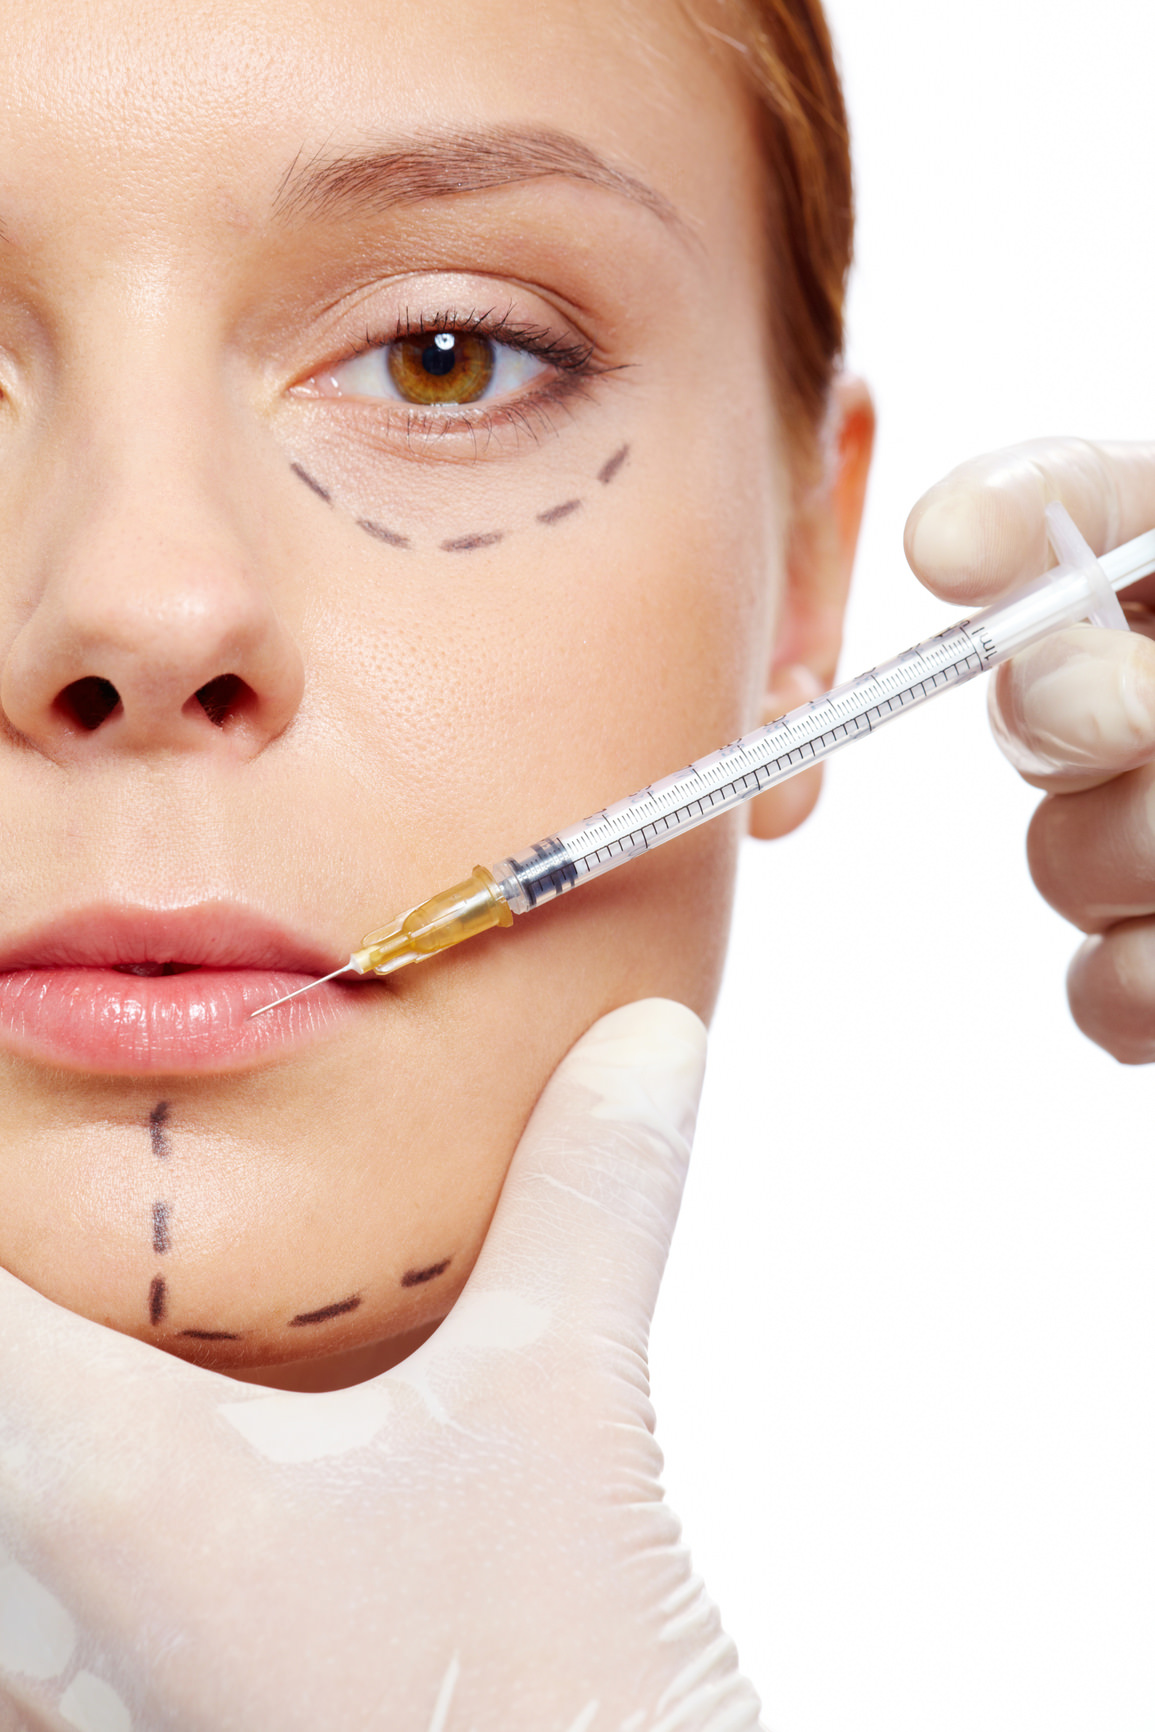 Injection of collagen